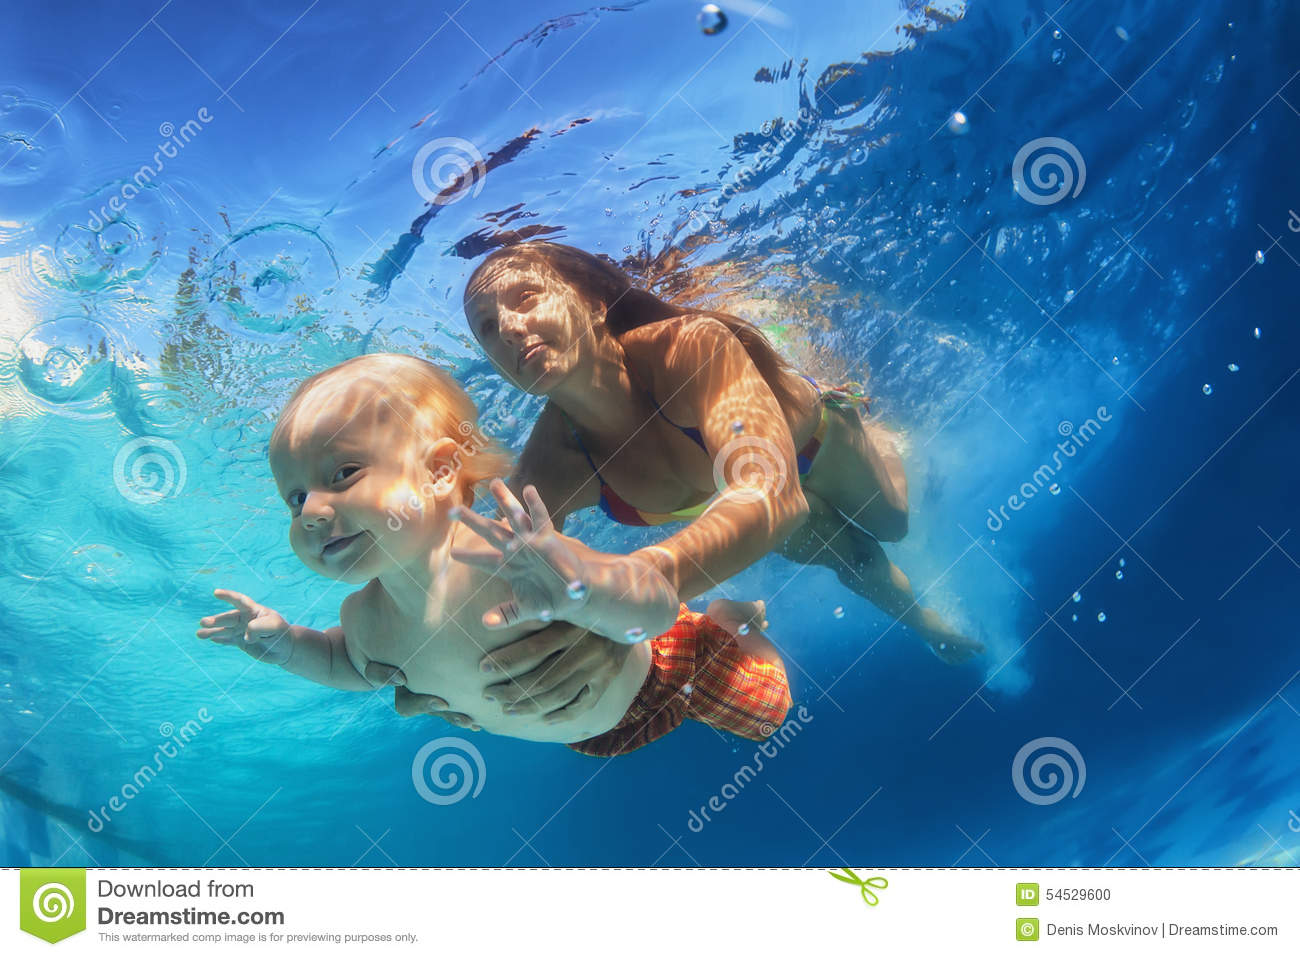 Download Mother With Child Swimming Underwater In The Pool Stock Photo - Image of attractive, background: 54529600